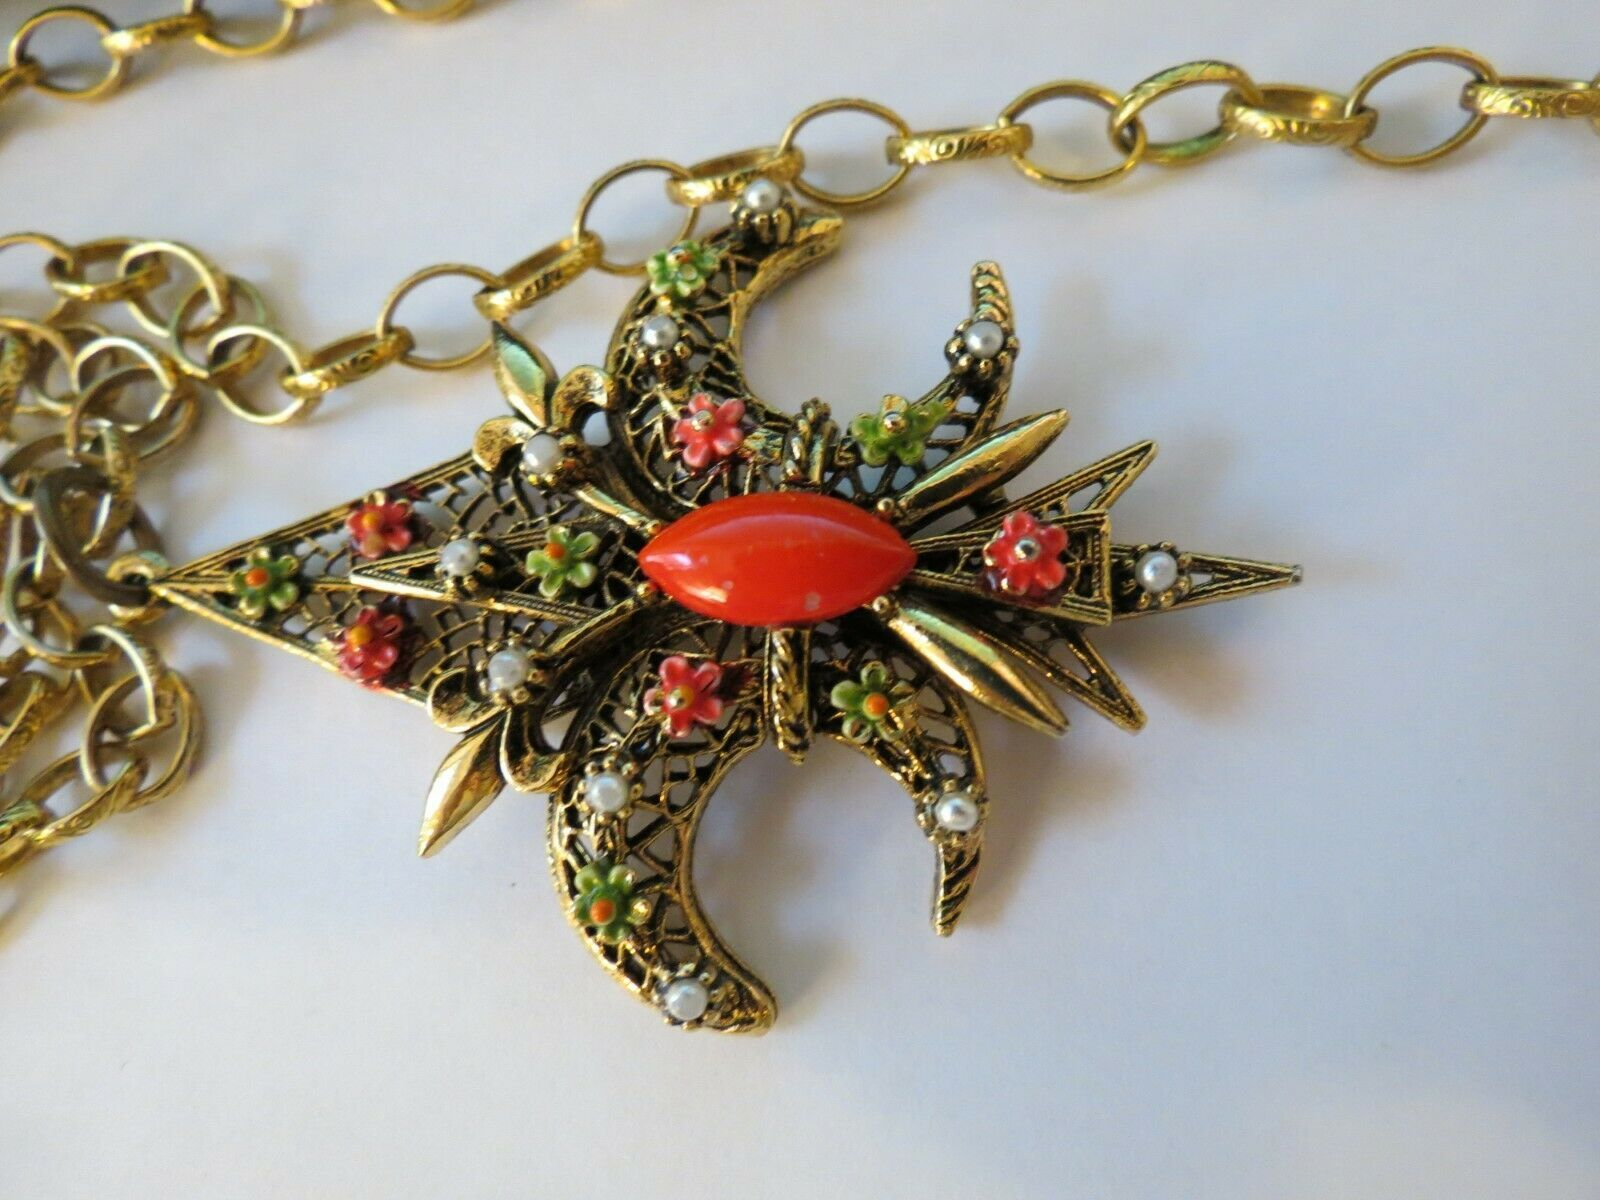 "VTG ART Fluer De Lis Pendant Necklace Enamel Flower Filigree Open Work 30"" Chain image 2"